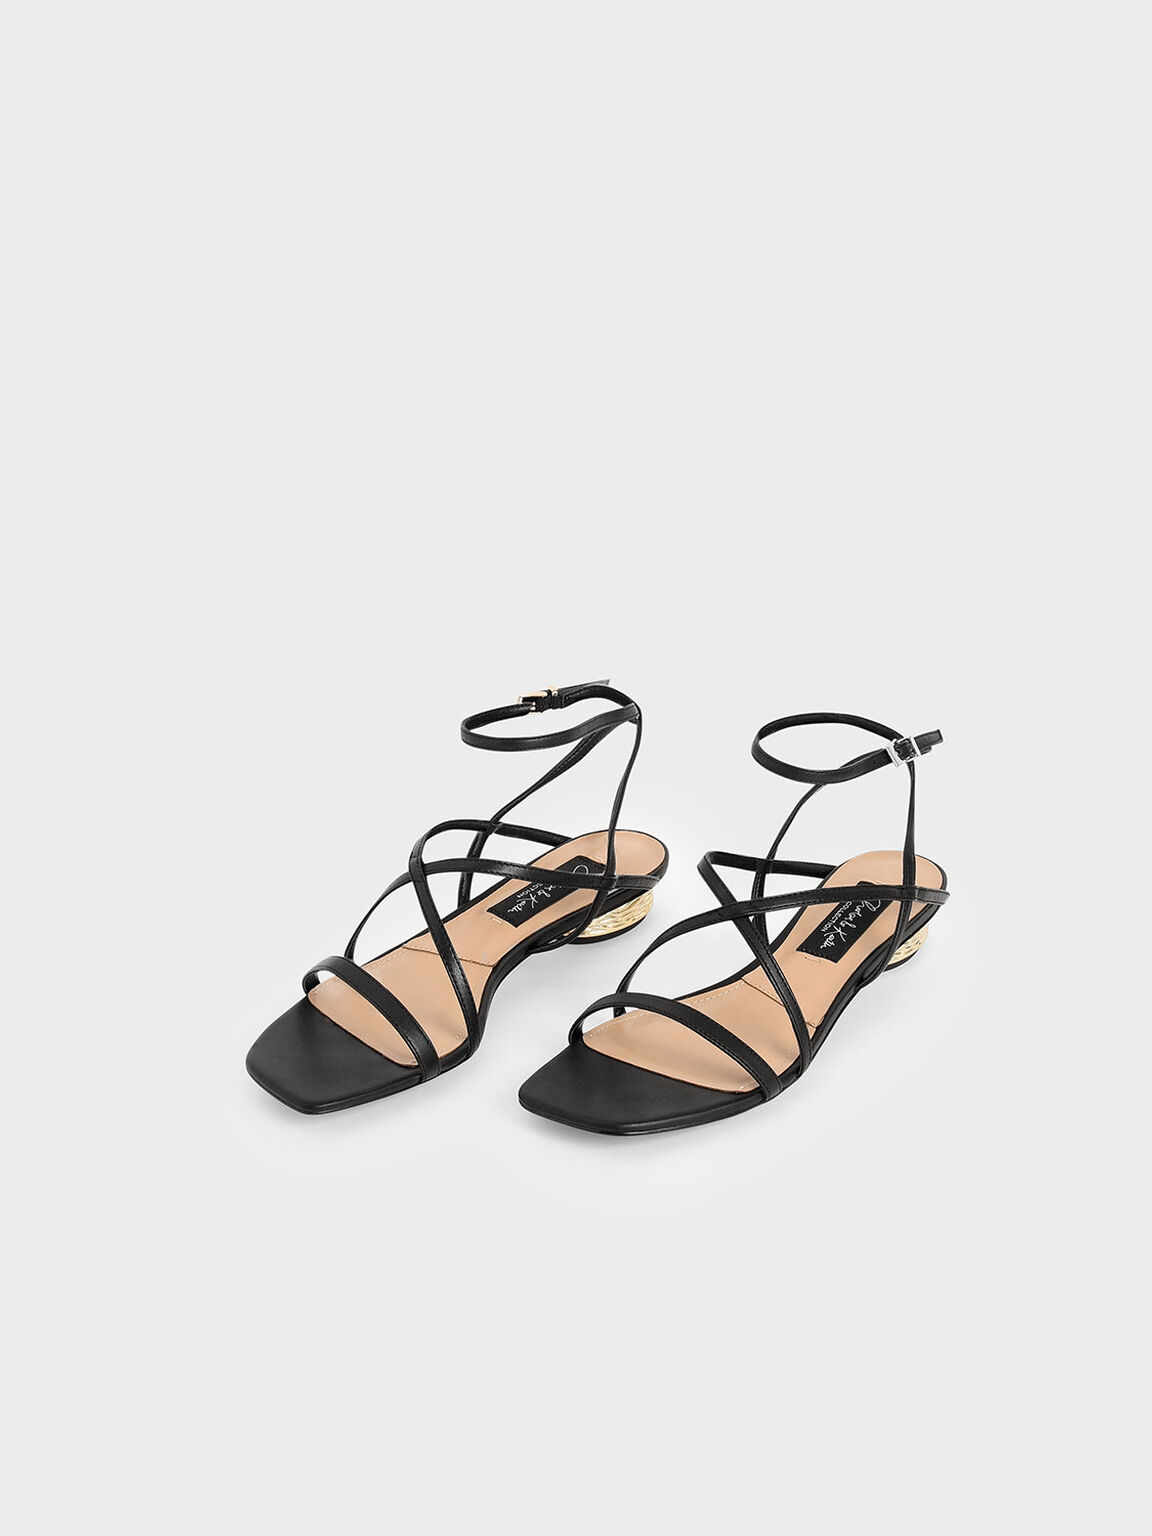 Leather Strappy Sandals, Black, hi-res